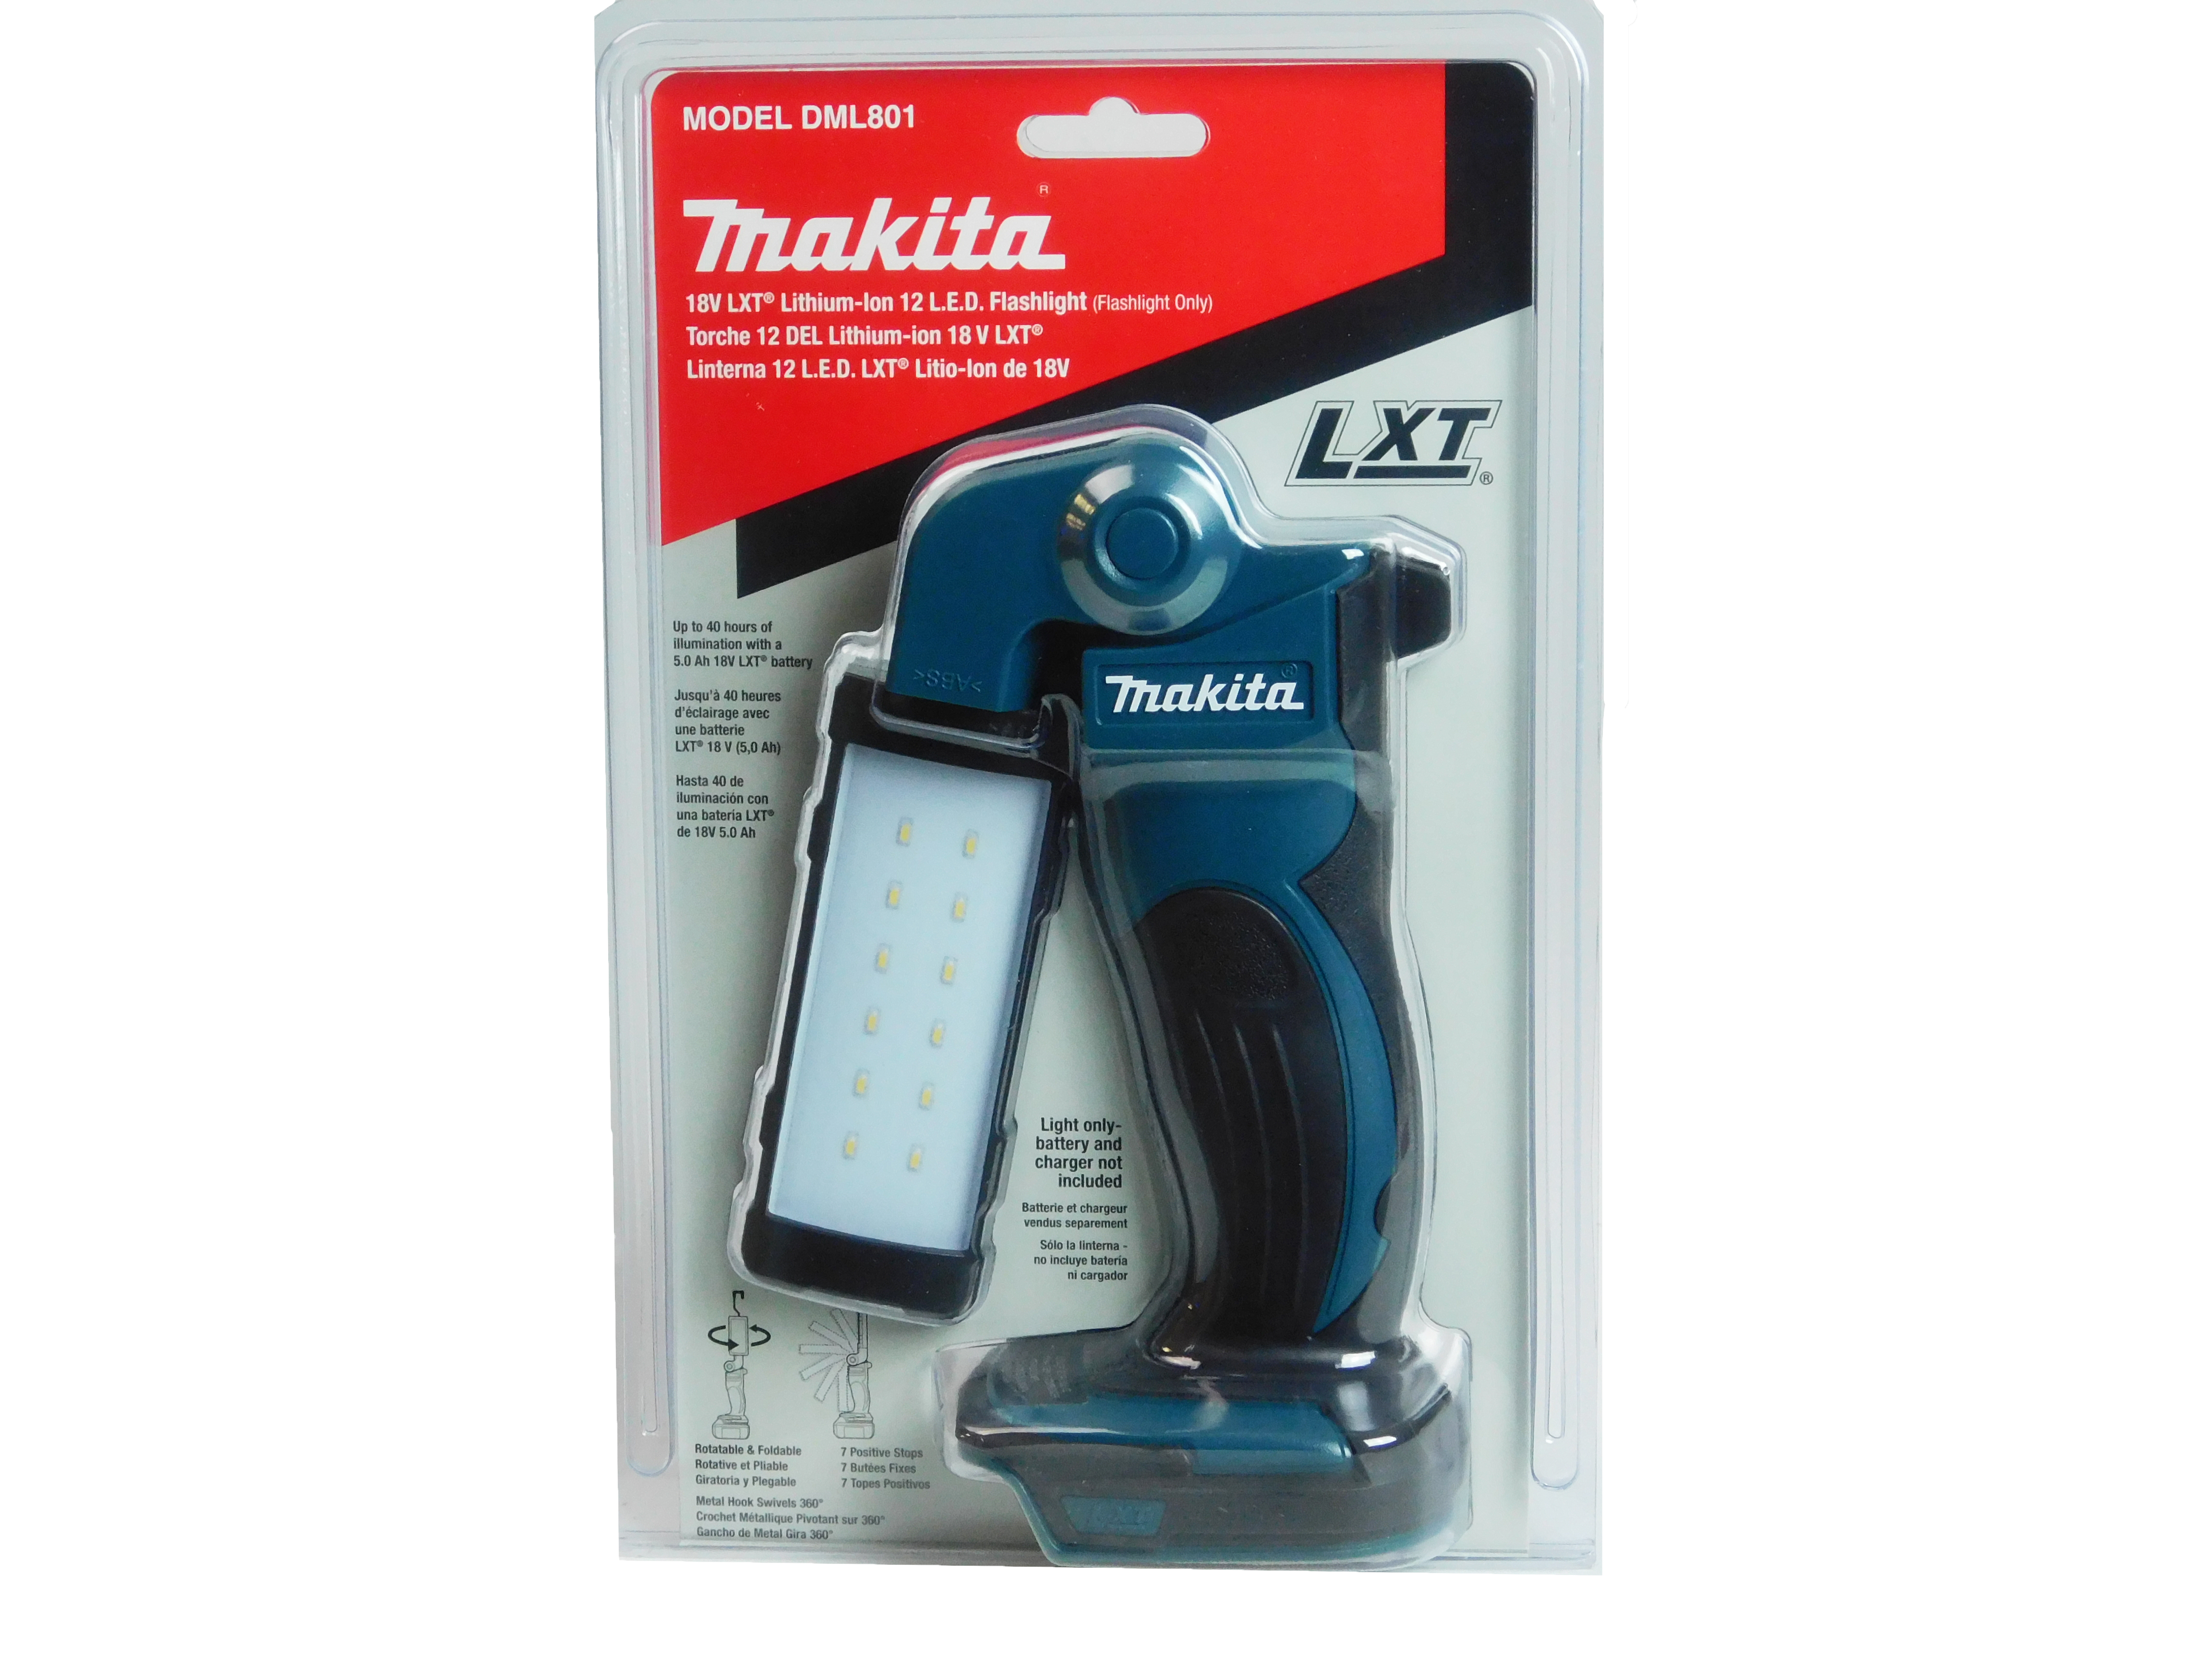 Makita-DML801-18V-LED-Lithium-Ion-Cordless-Flashlight-image-9